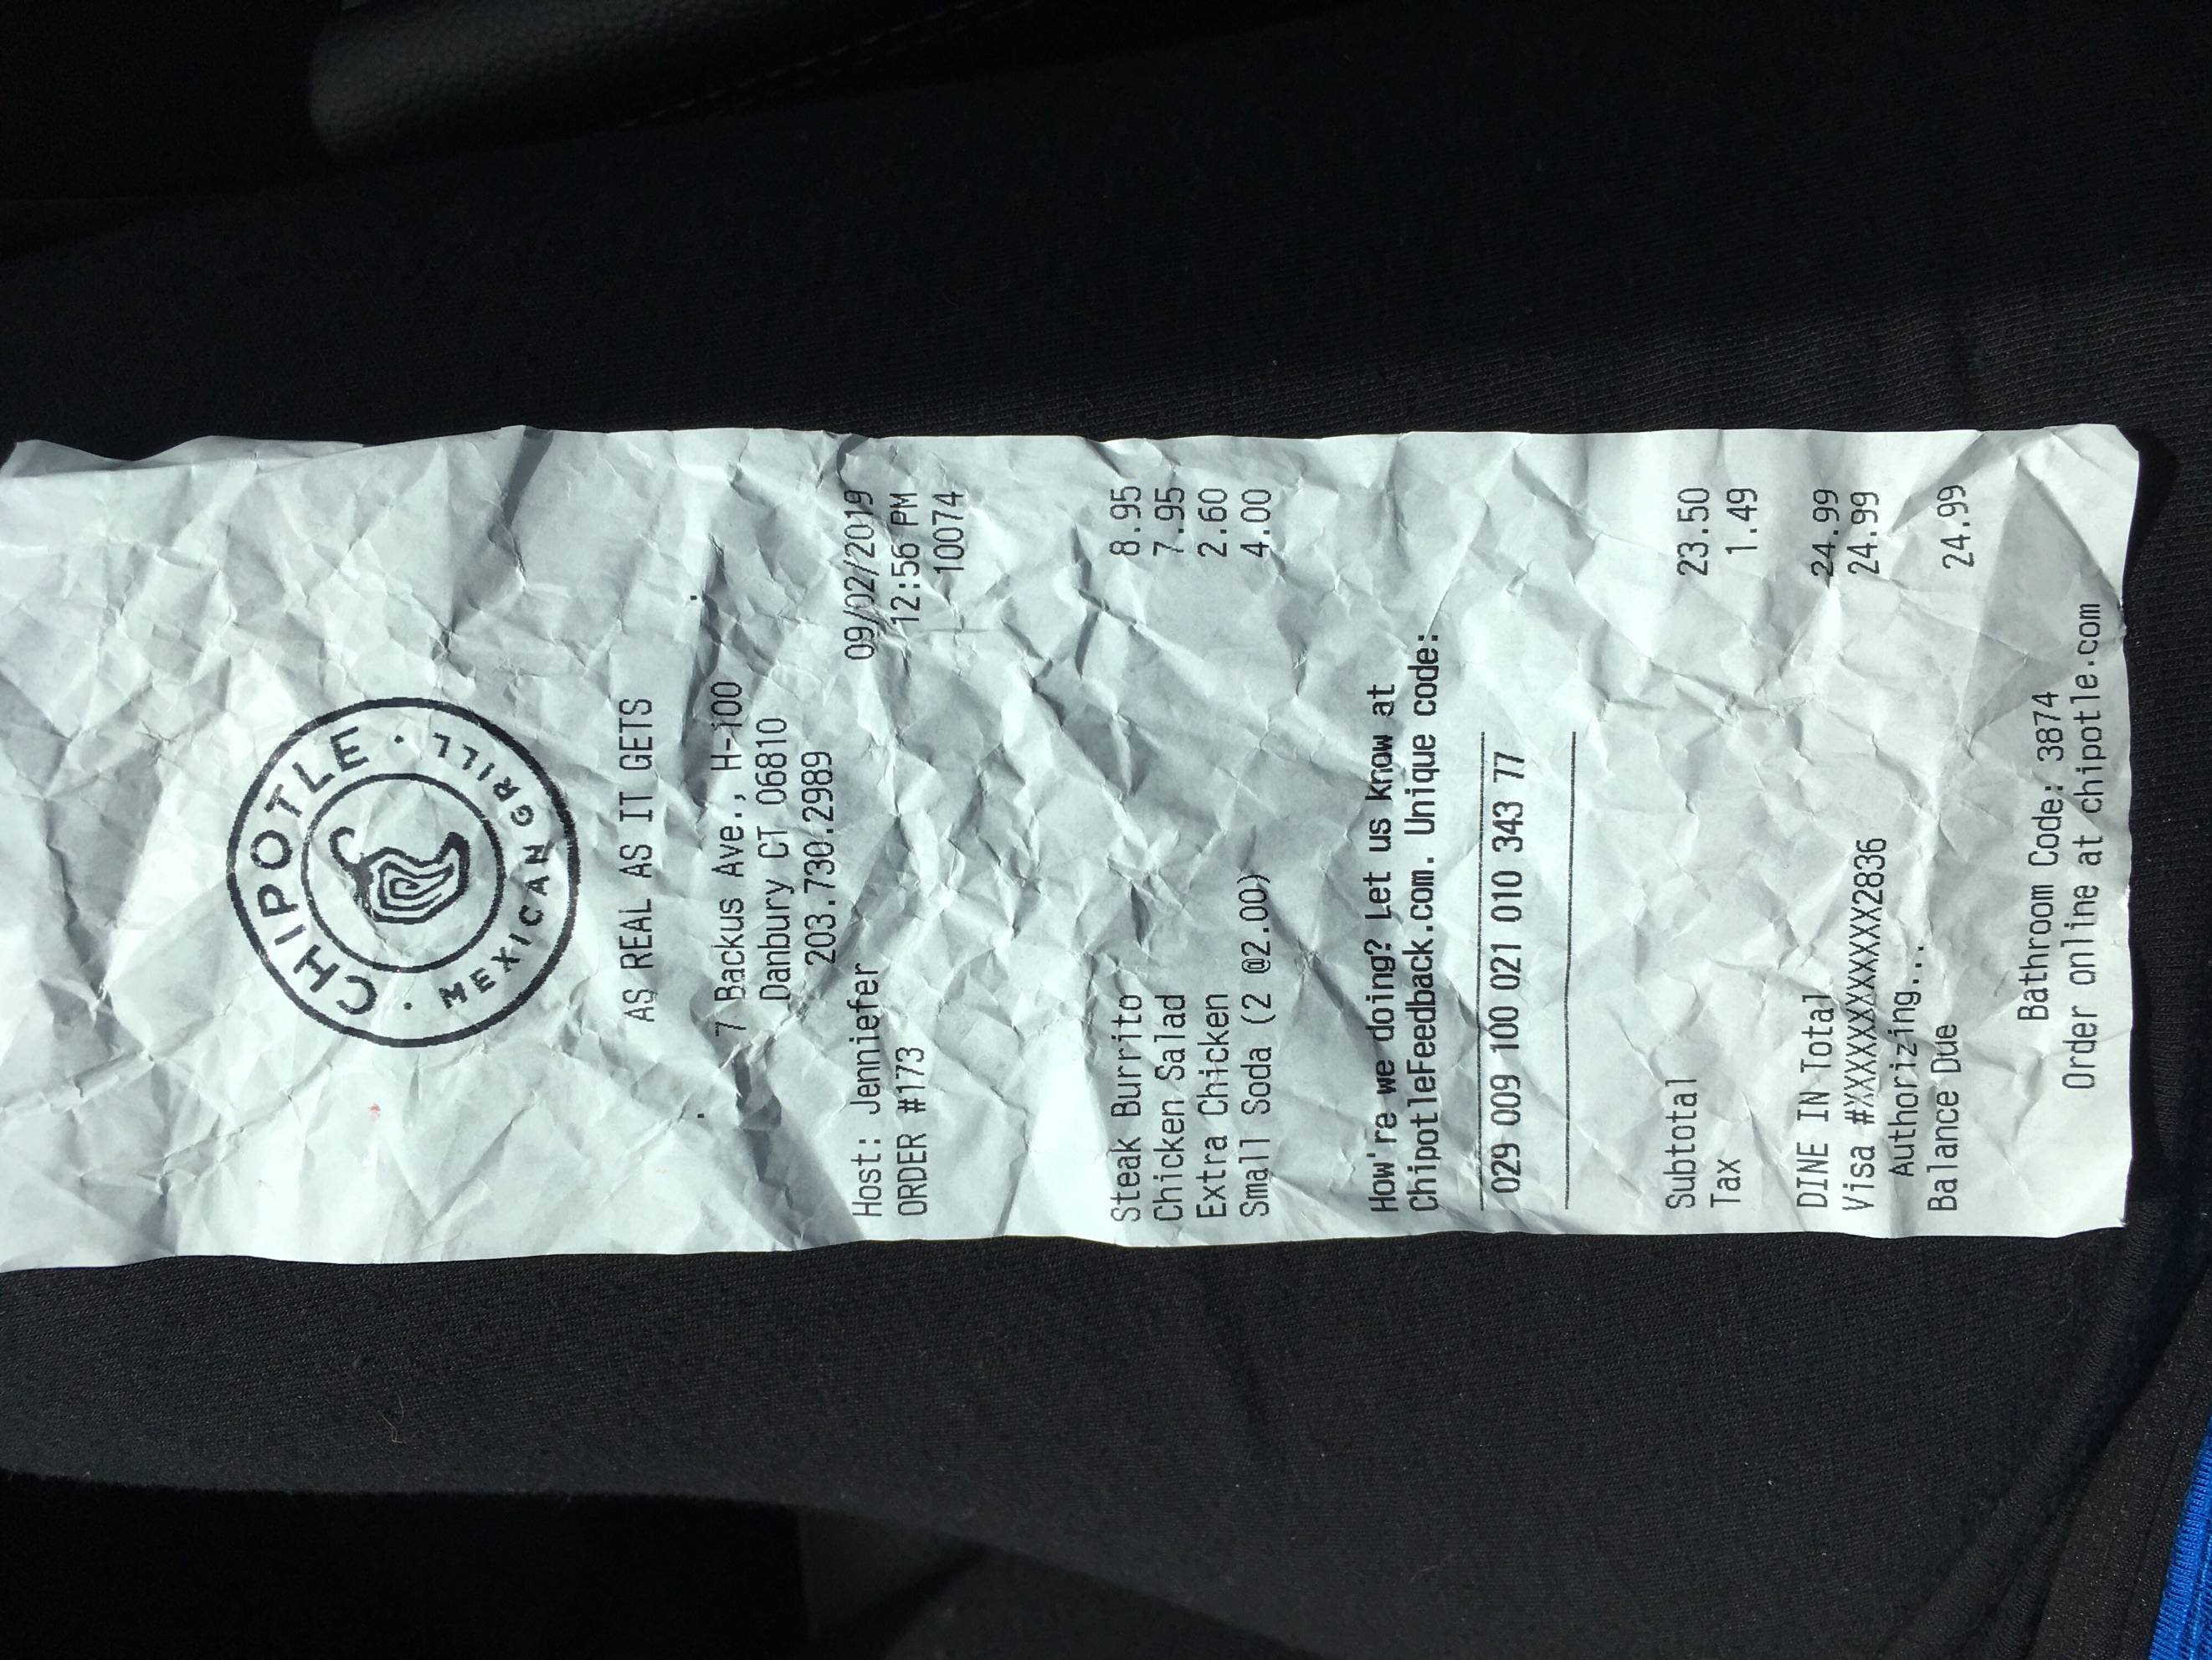 Chipotle Mexican Grill - Got Food Poisoning? Report it now